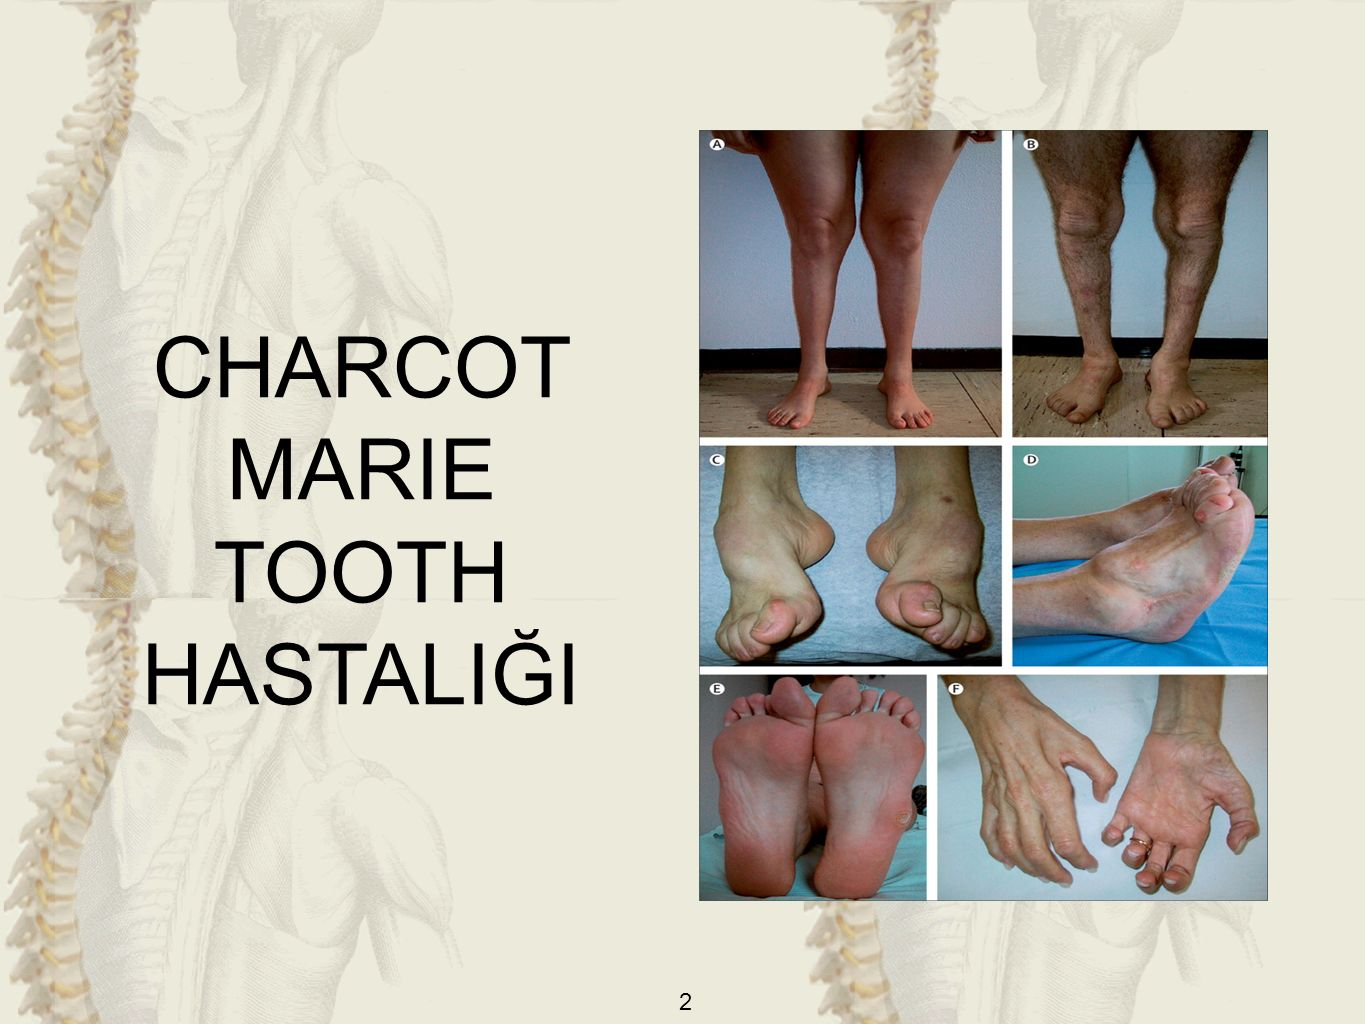 CHARCOT MARIE TOOTH HASTALIĞI